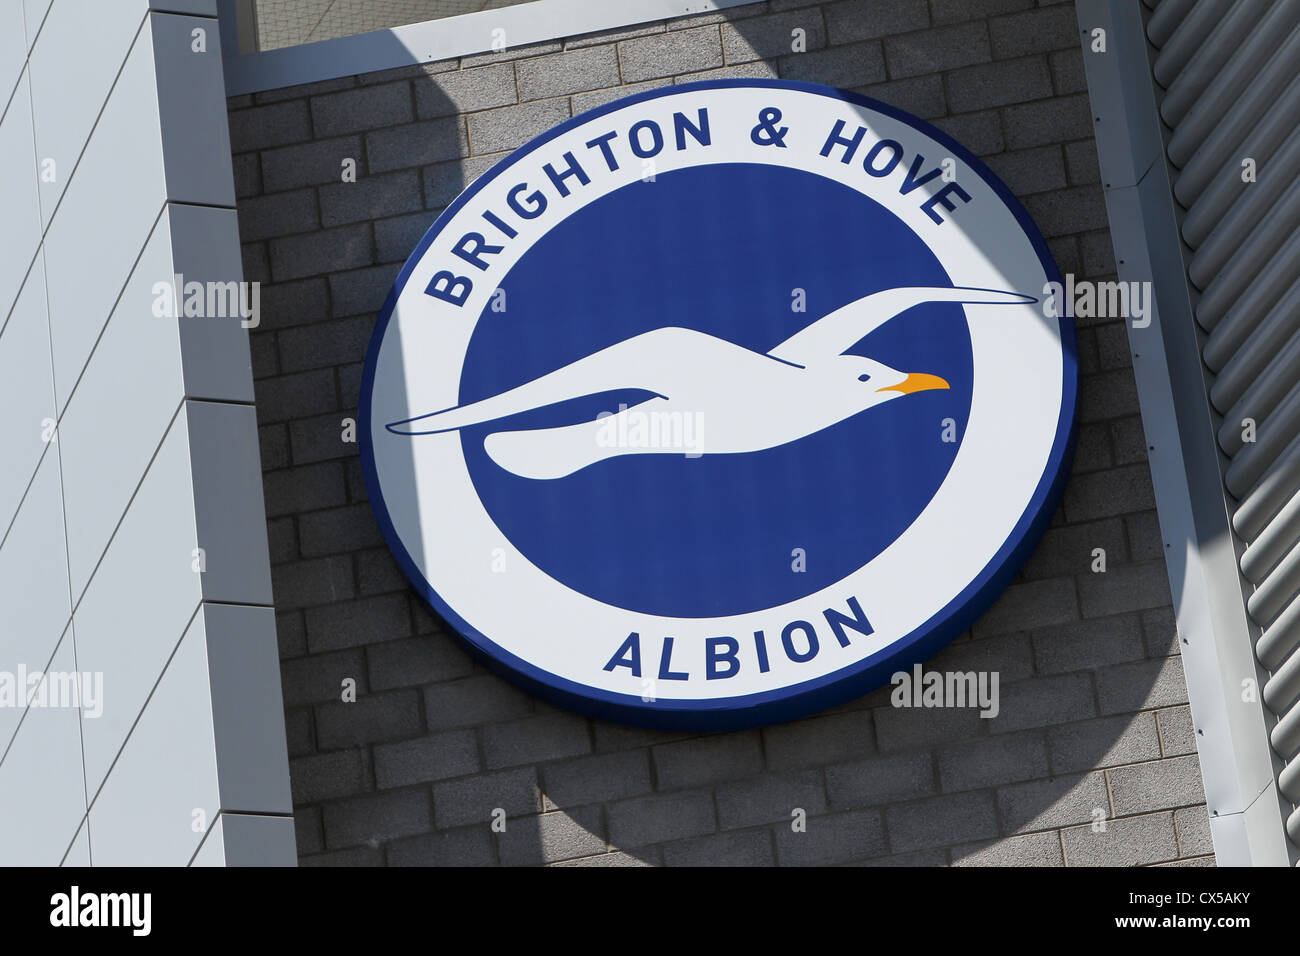 brighton and hove football club logo on the side of their